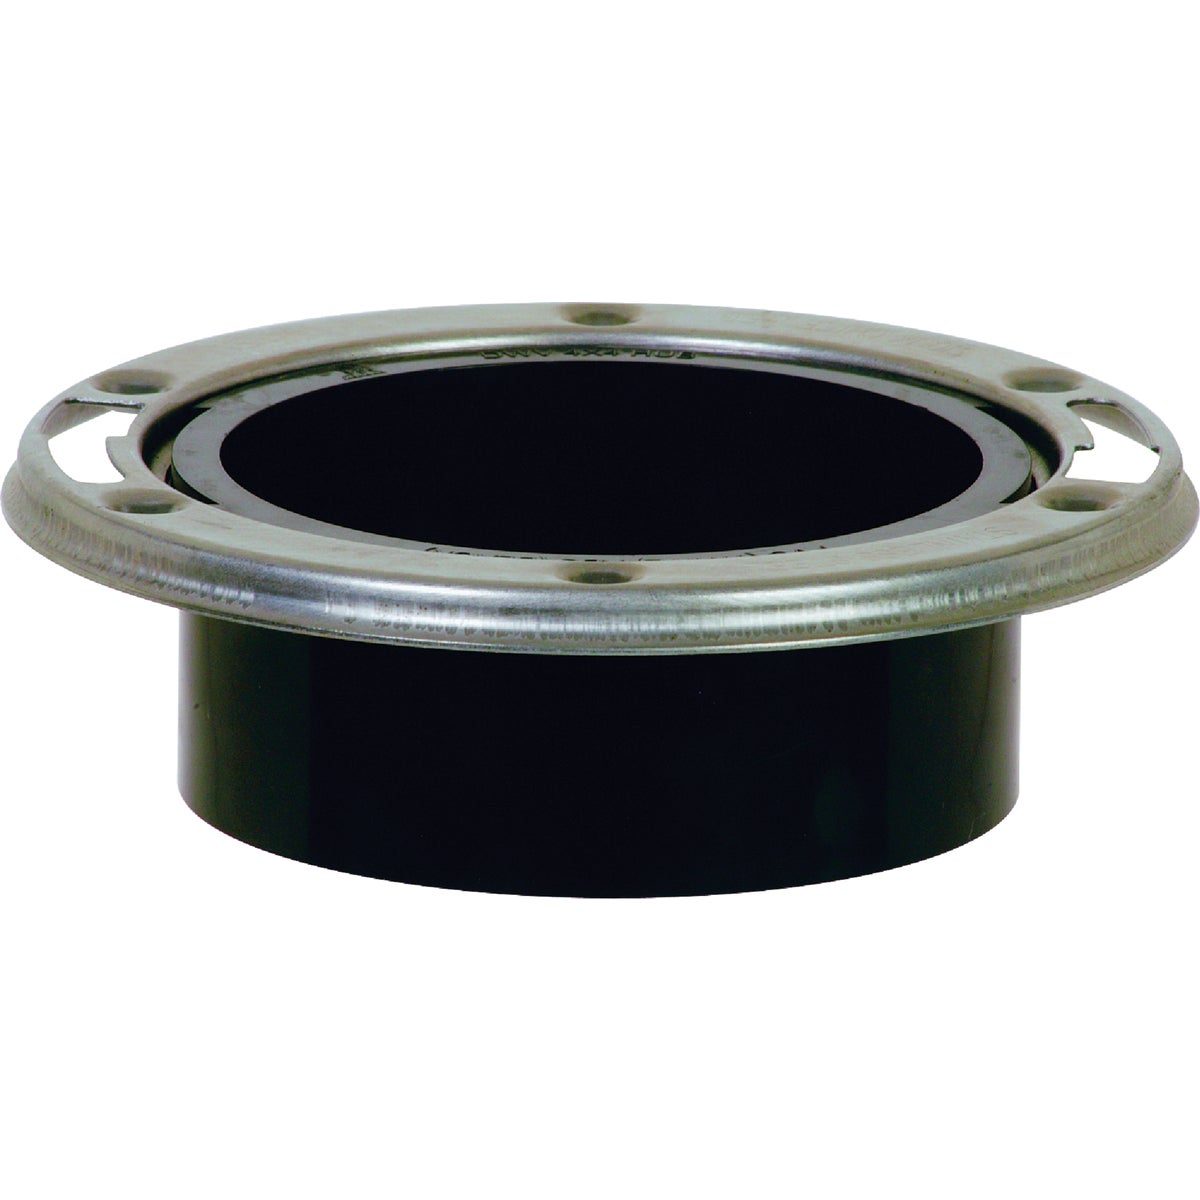 4X3 SS ABS CLOSET FLANGE - 887-AM by Sioux Chief Mfg